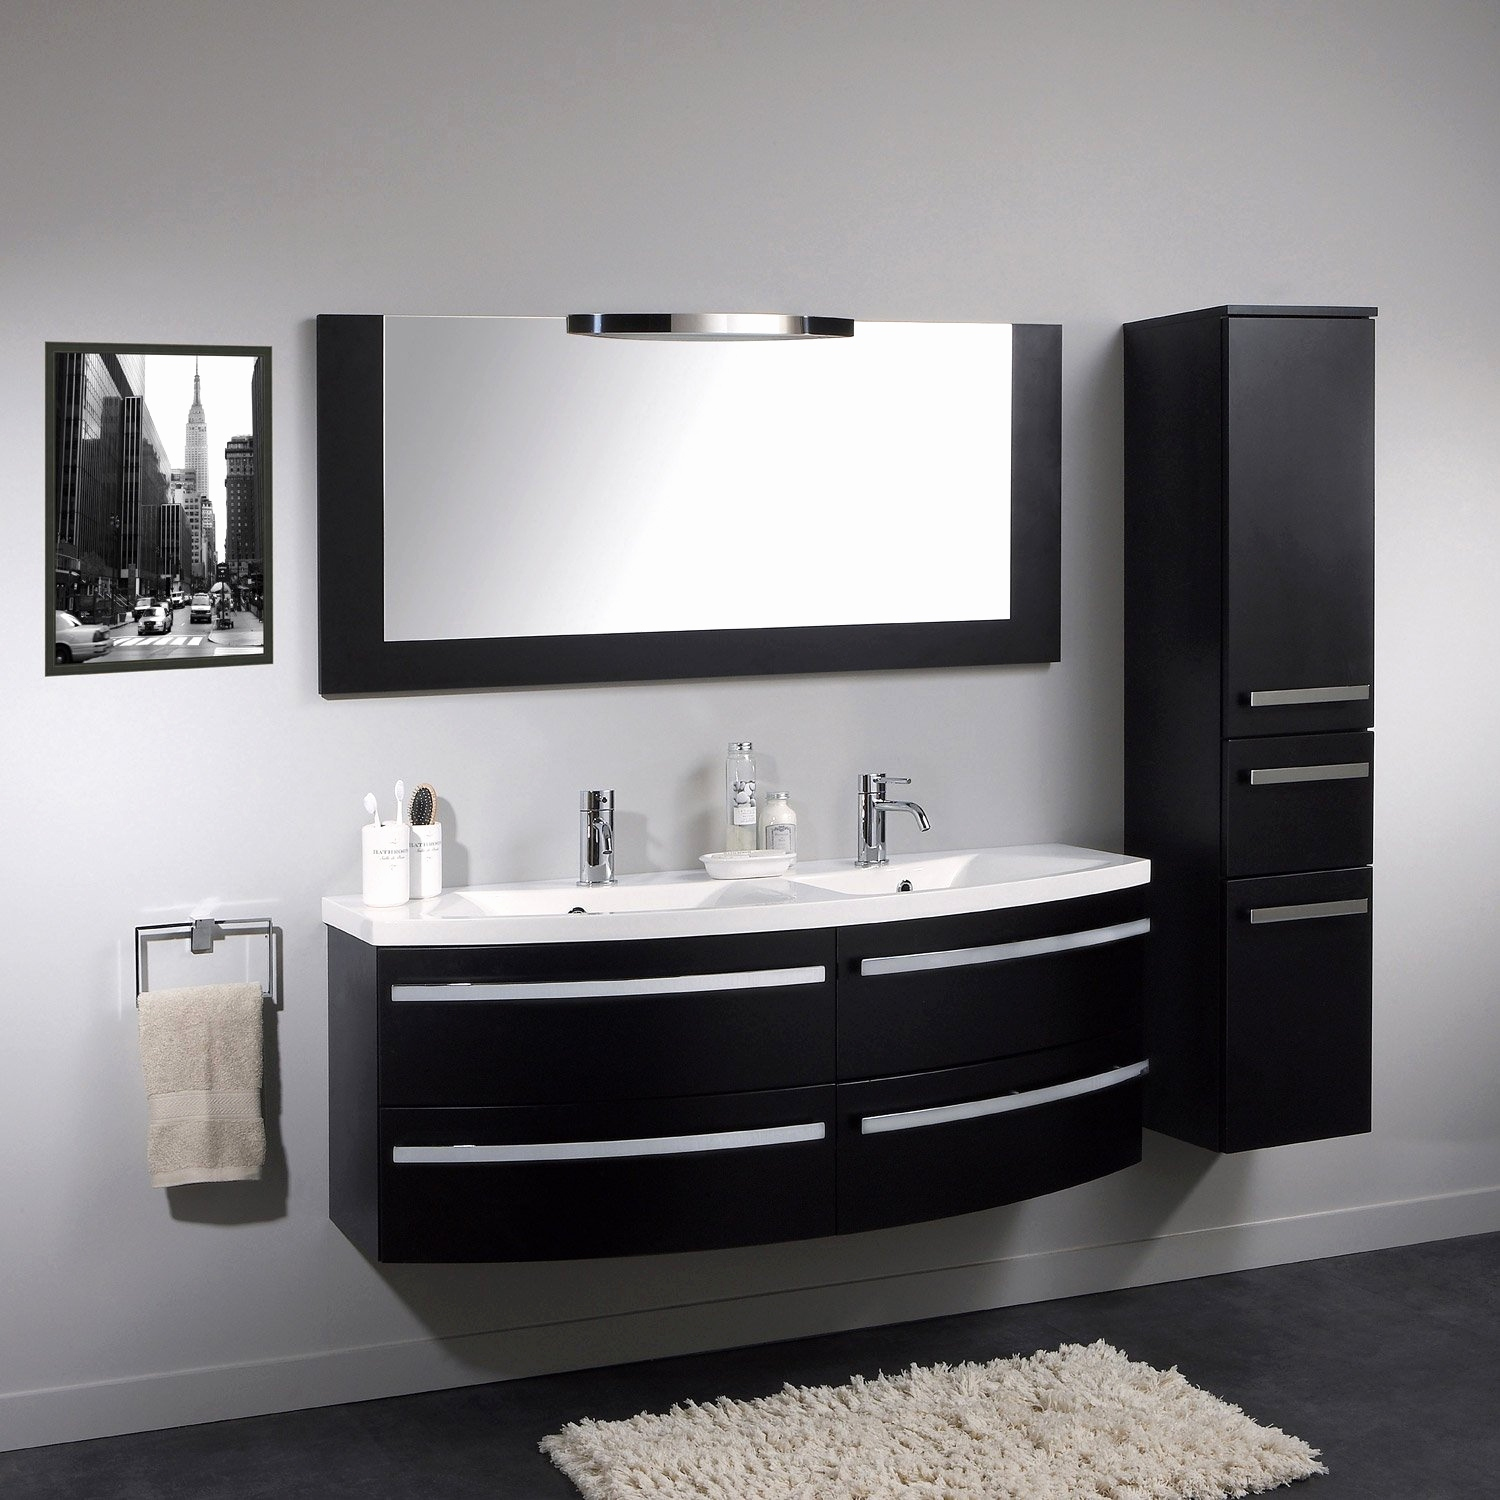 74 beau images de meuble salle de bains ikea. Black Bedroom Furniture Sets. Home Design Ideas